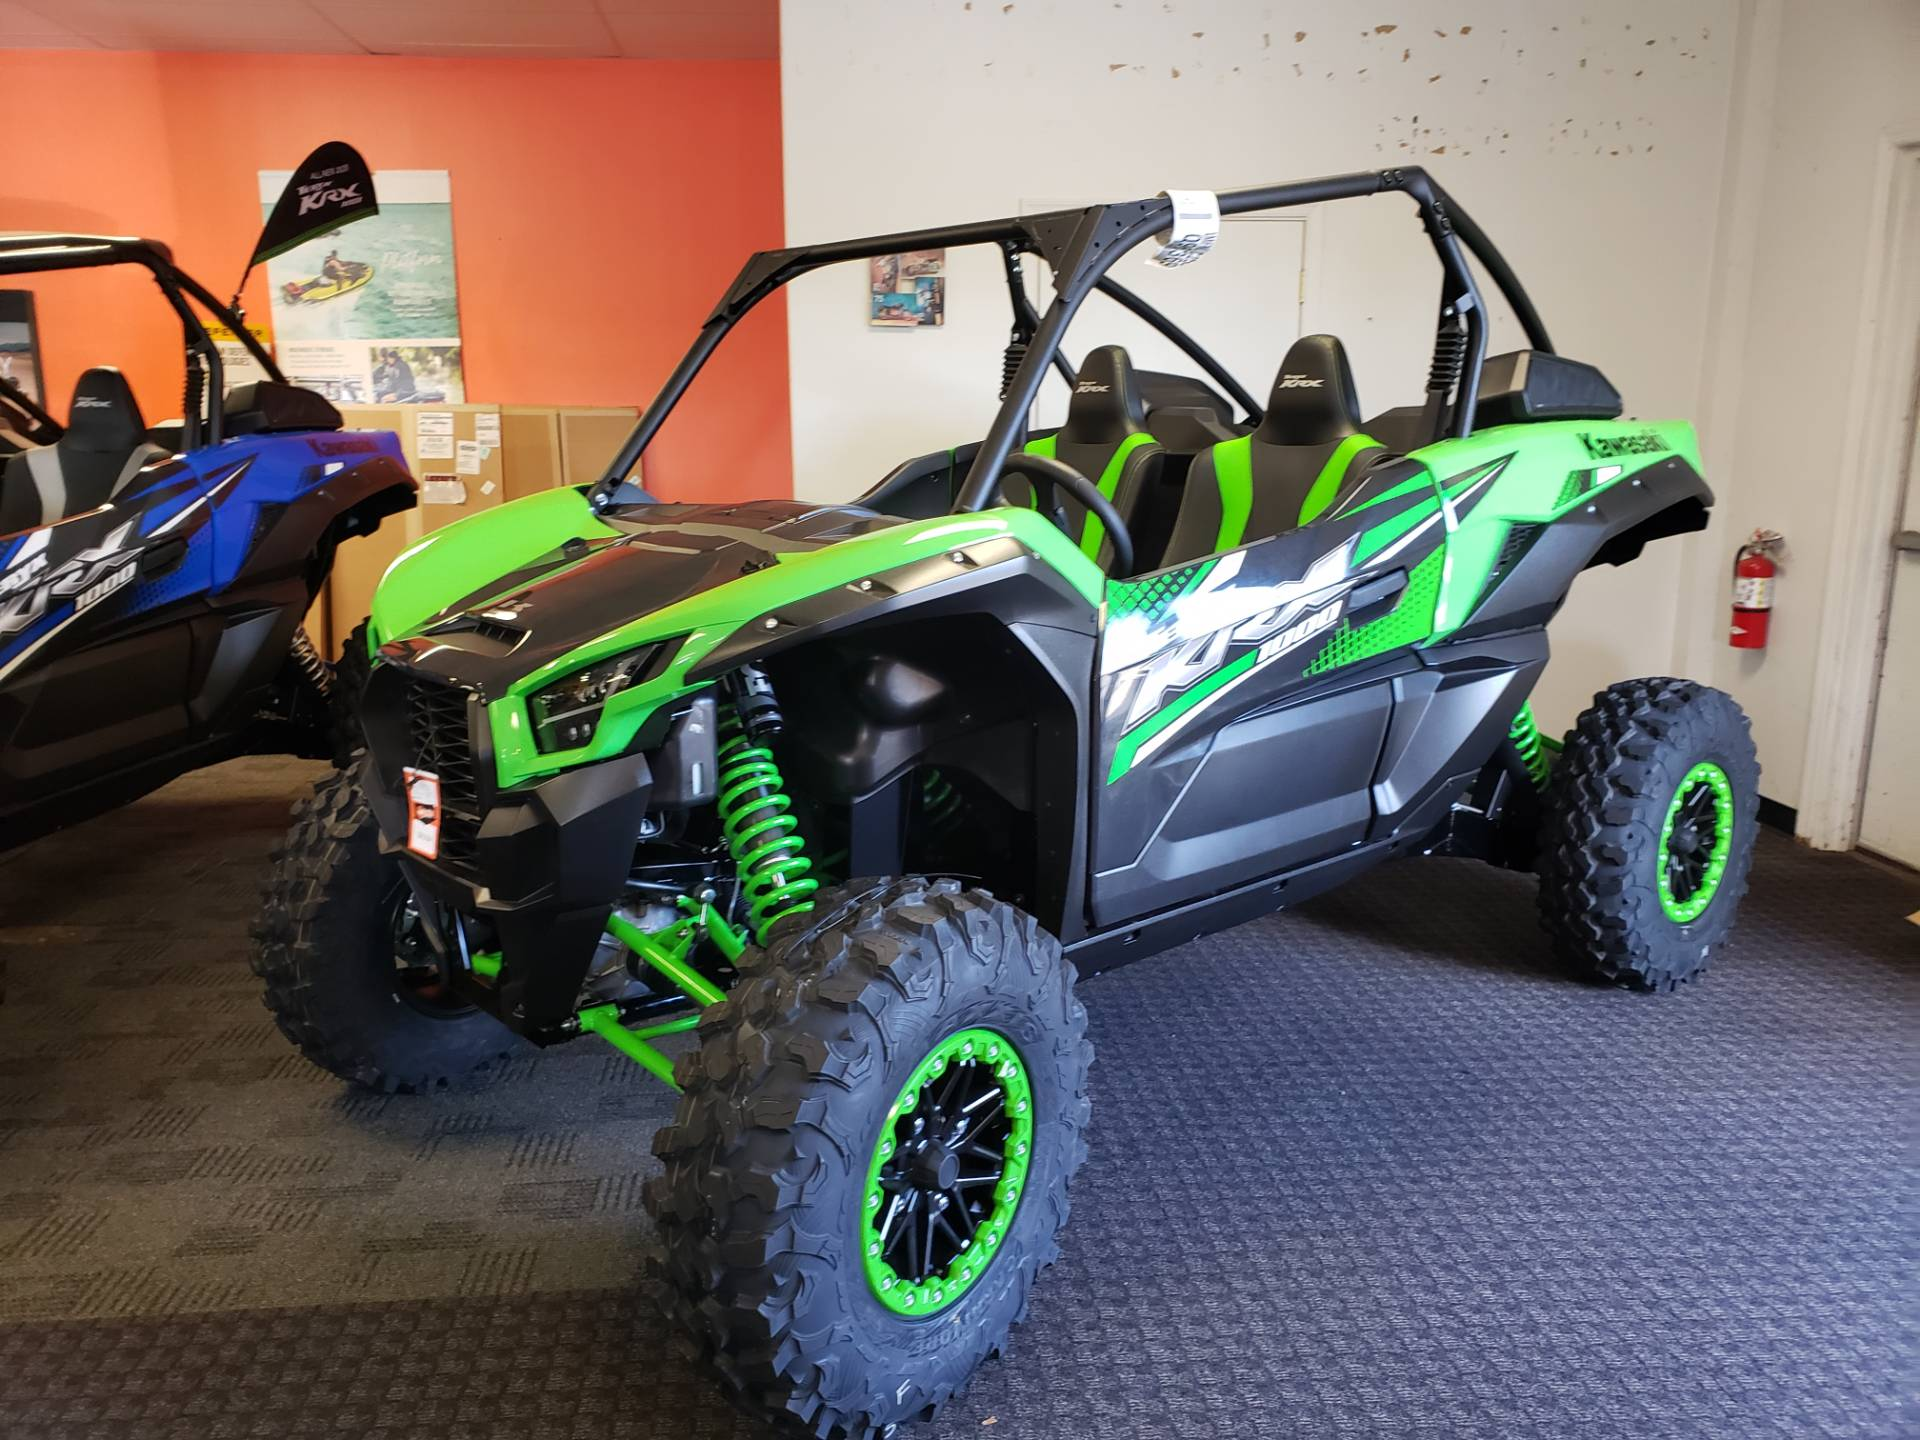 2021 Kawasaki Teryx KRX 1000 in Wilkes Barre, Pennsylvania - Photo 1